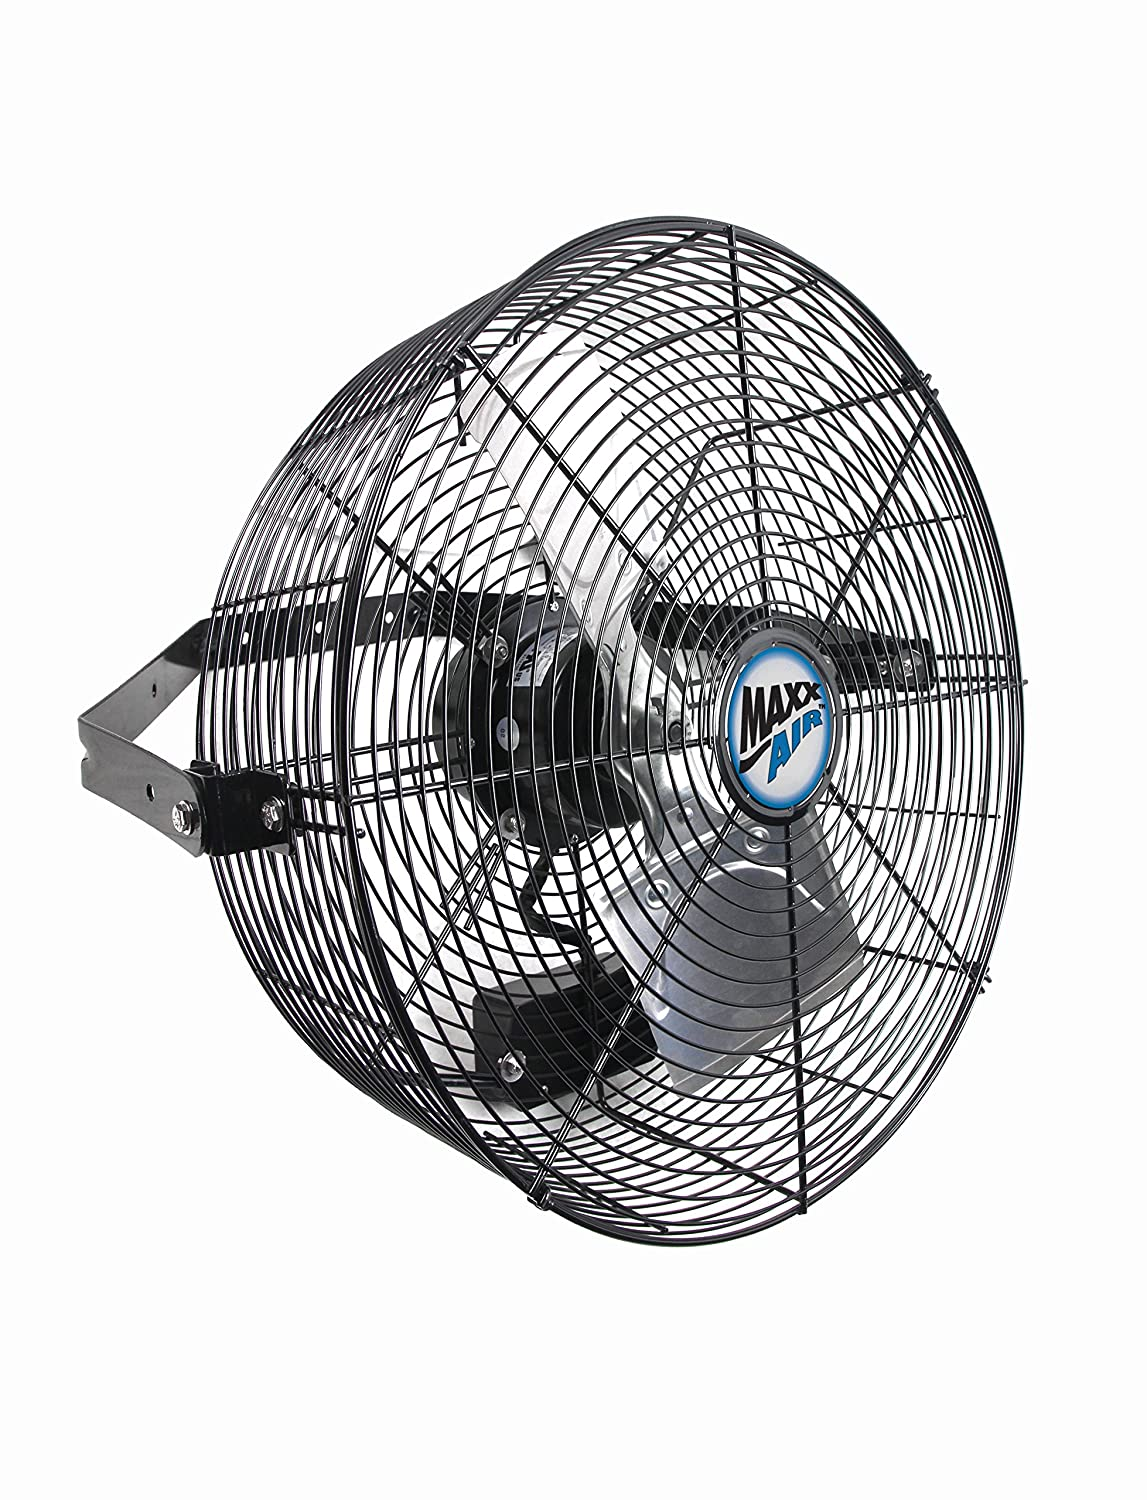 Maxxair Commercial Industrial High Velocity Wall Mount Fan, 18-Inch, Heavy Duty Grade for Patio, Barn, Shop 18 Inches